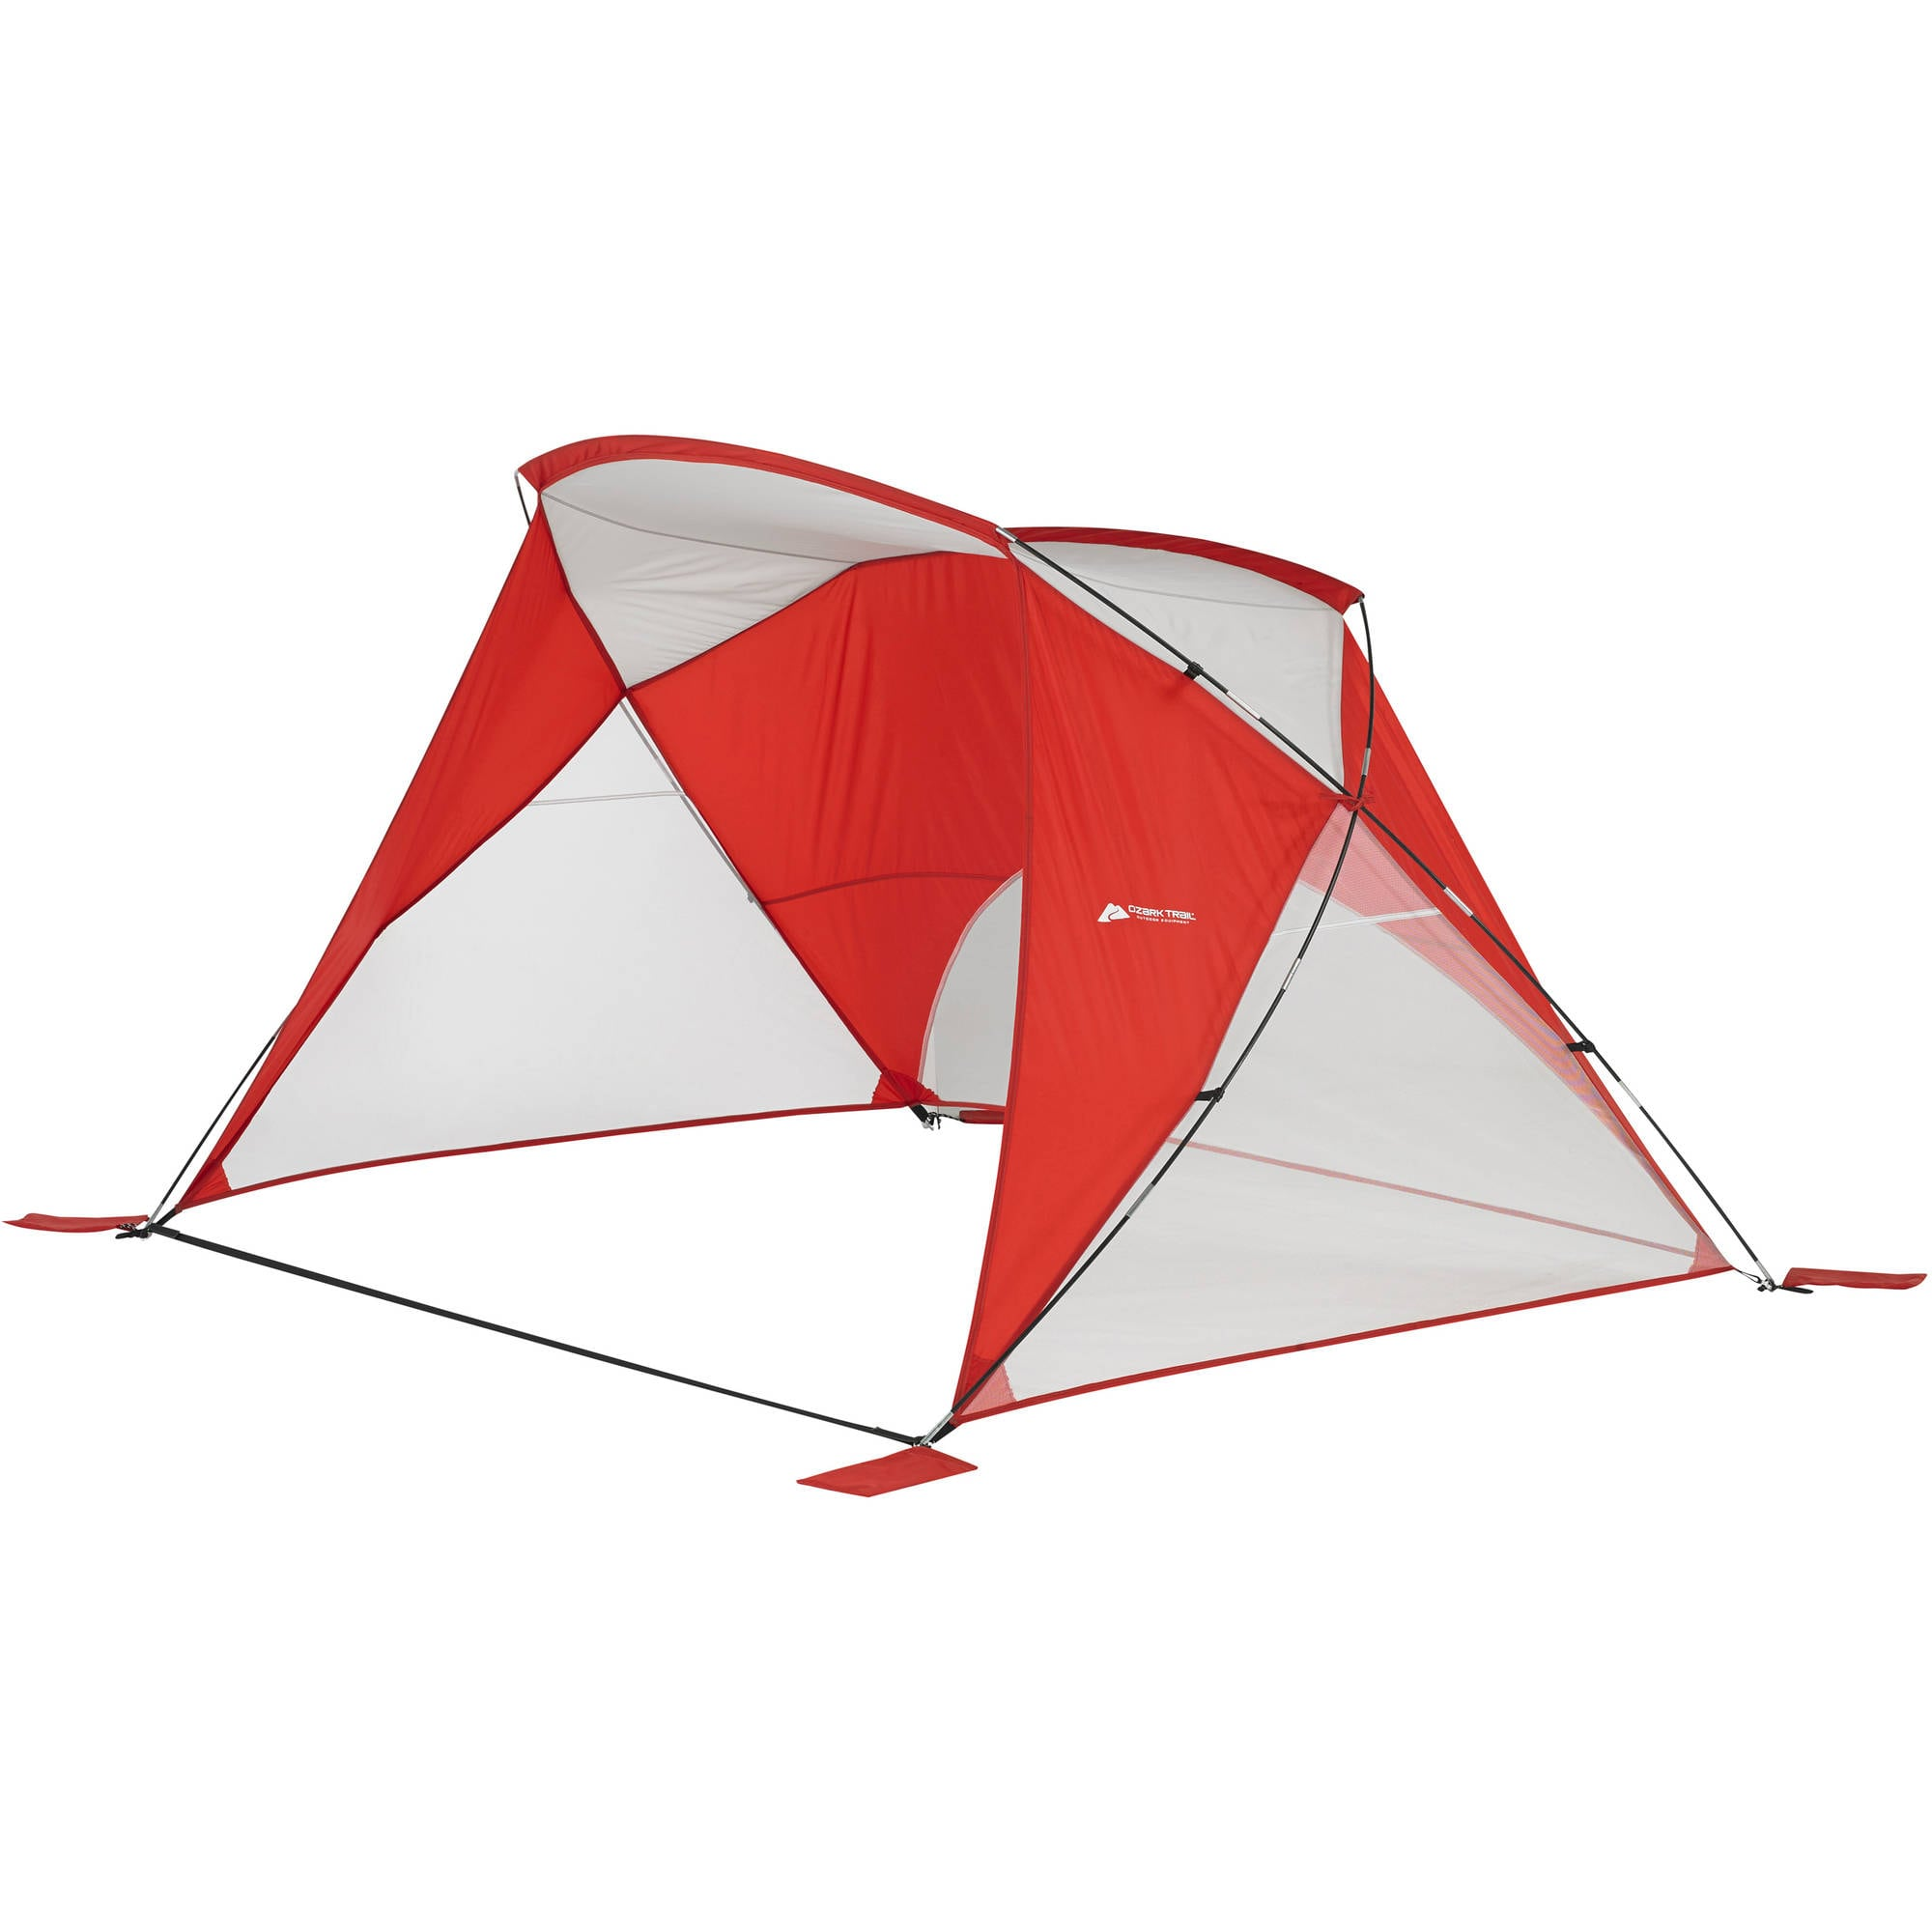 Deal Image  sc 1 st  Slickdeals & Ozark Trail Sun Shelter (Red) - Slickdeals.net